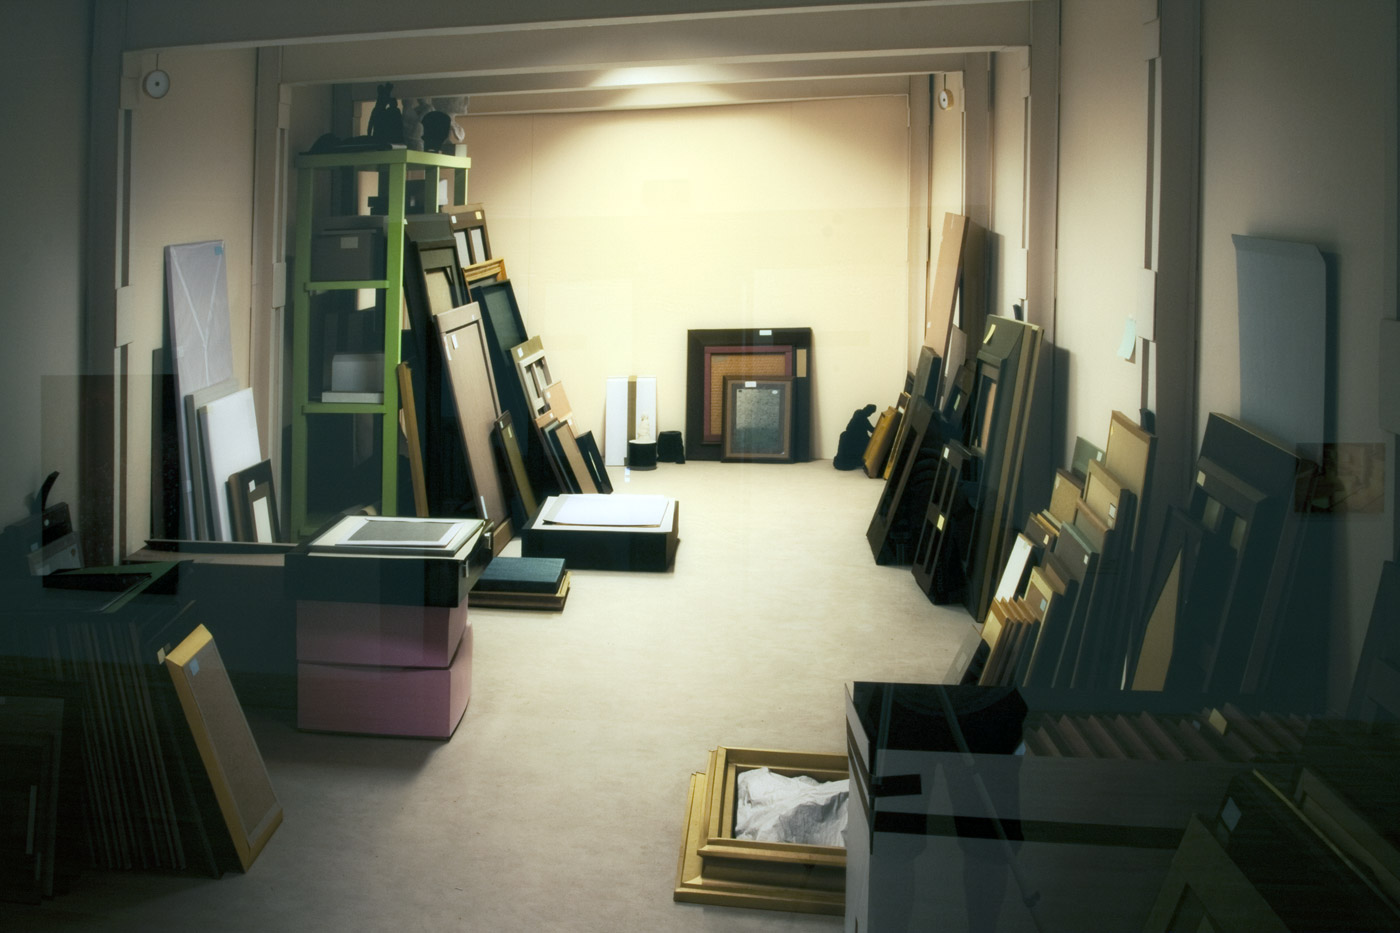 1000 images about thomas demand on pinterest bonn berlin and art photography. Black Bedroom Furniture Sets. Home Design Ideas